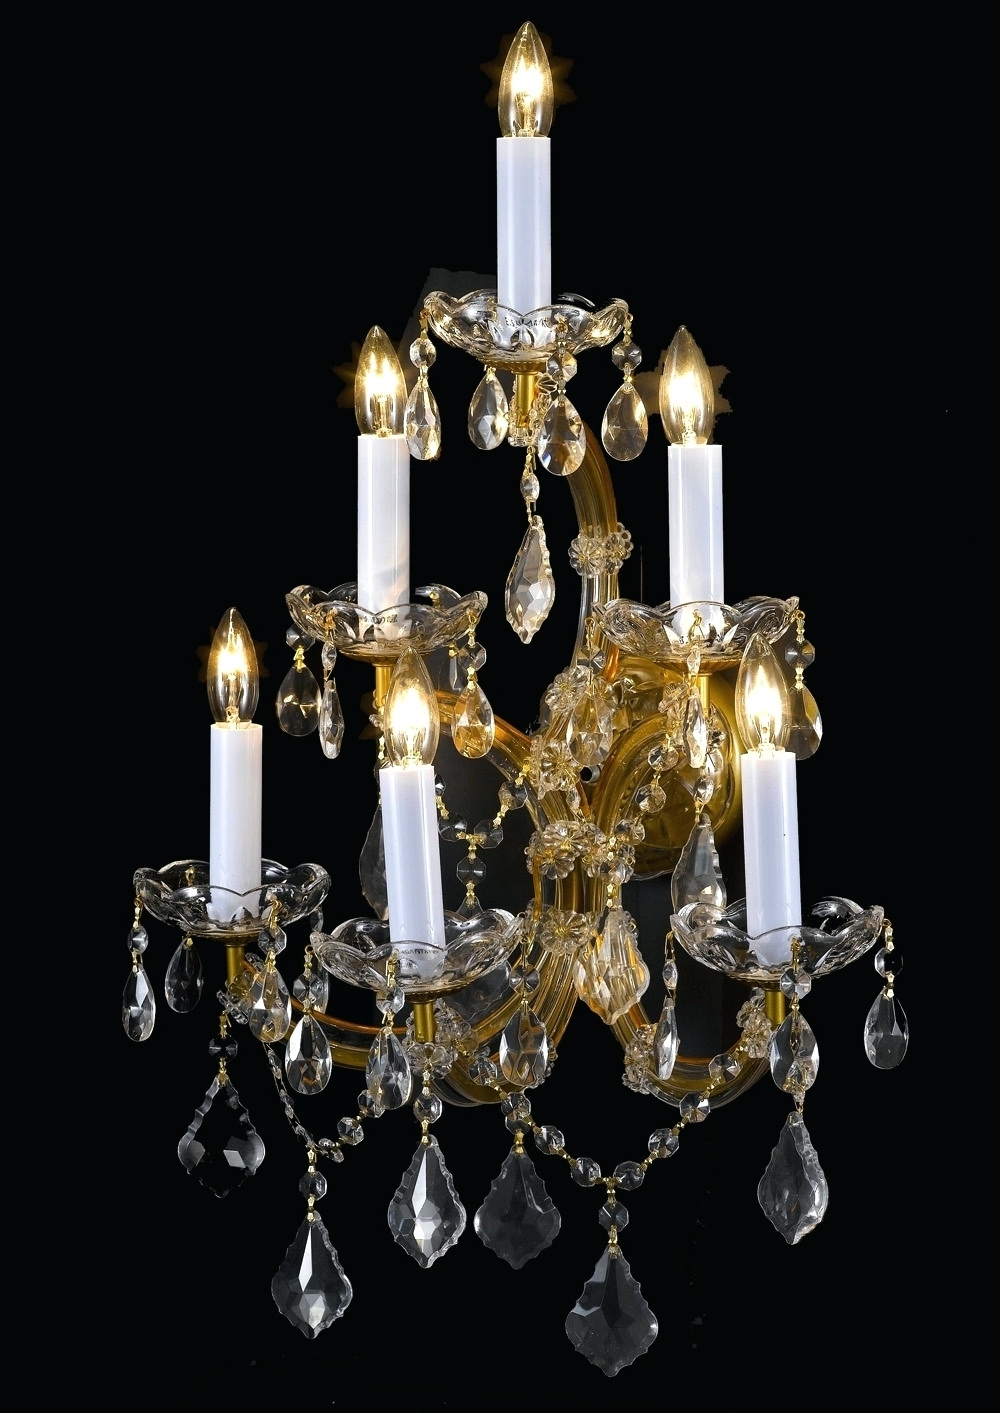 Black Chandelier Wall Lights Intended For Most Recent Chandeliers ~ Crystal Chandelier Wall Sconces A83 6 66 Wall Sconces (View 7 of 20)